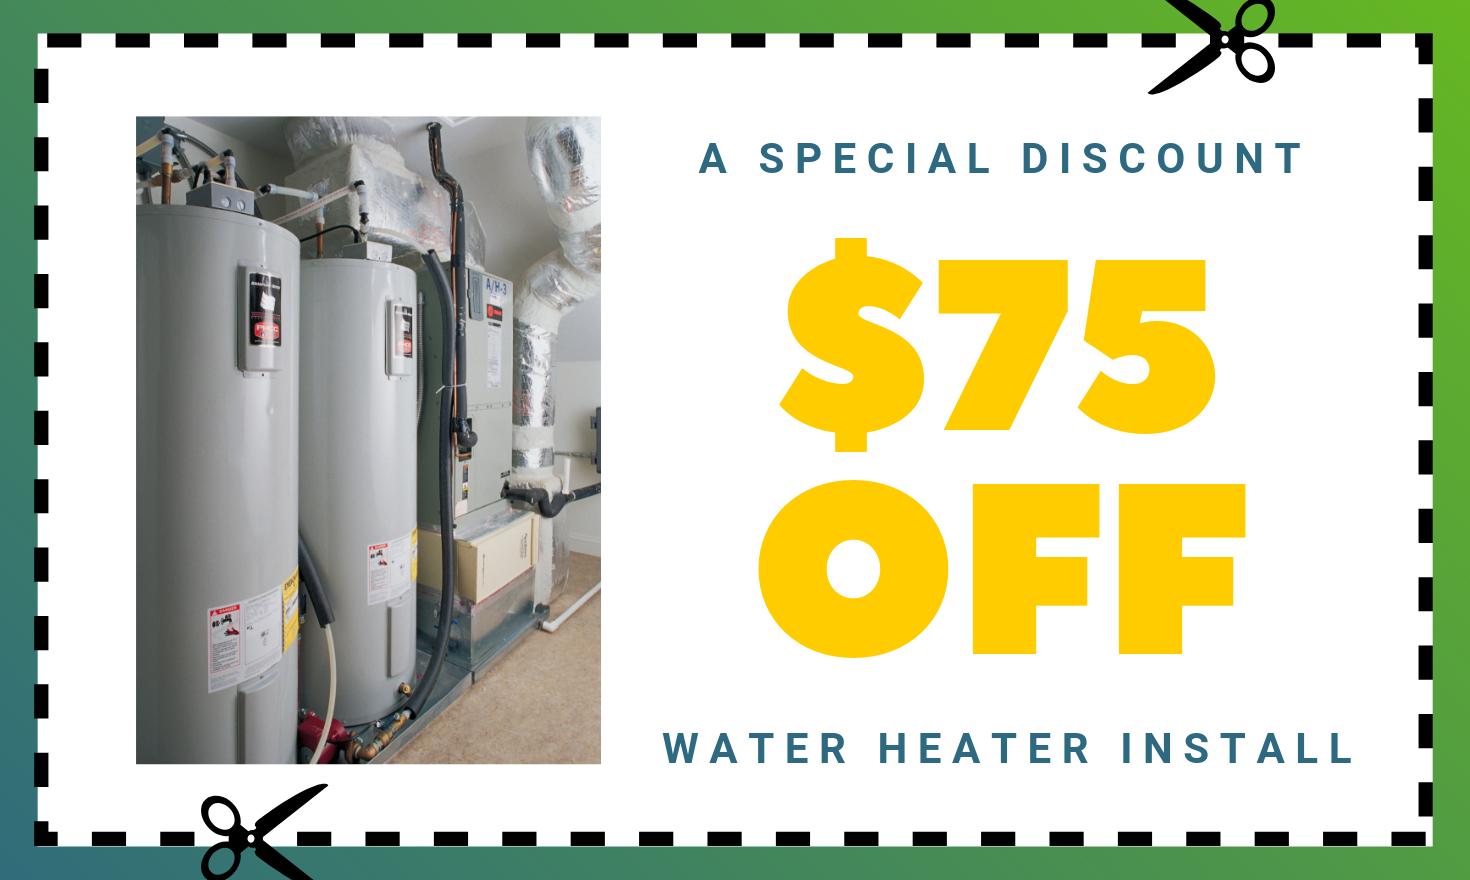 $75 Off Your Hot Water Heater Install